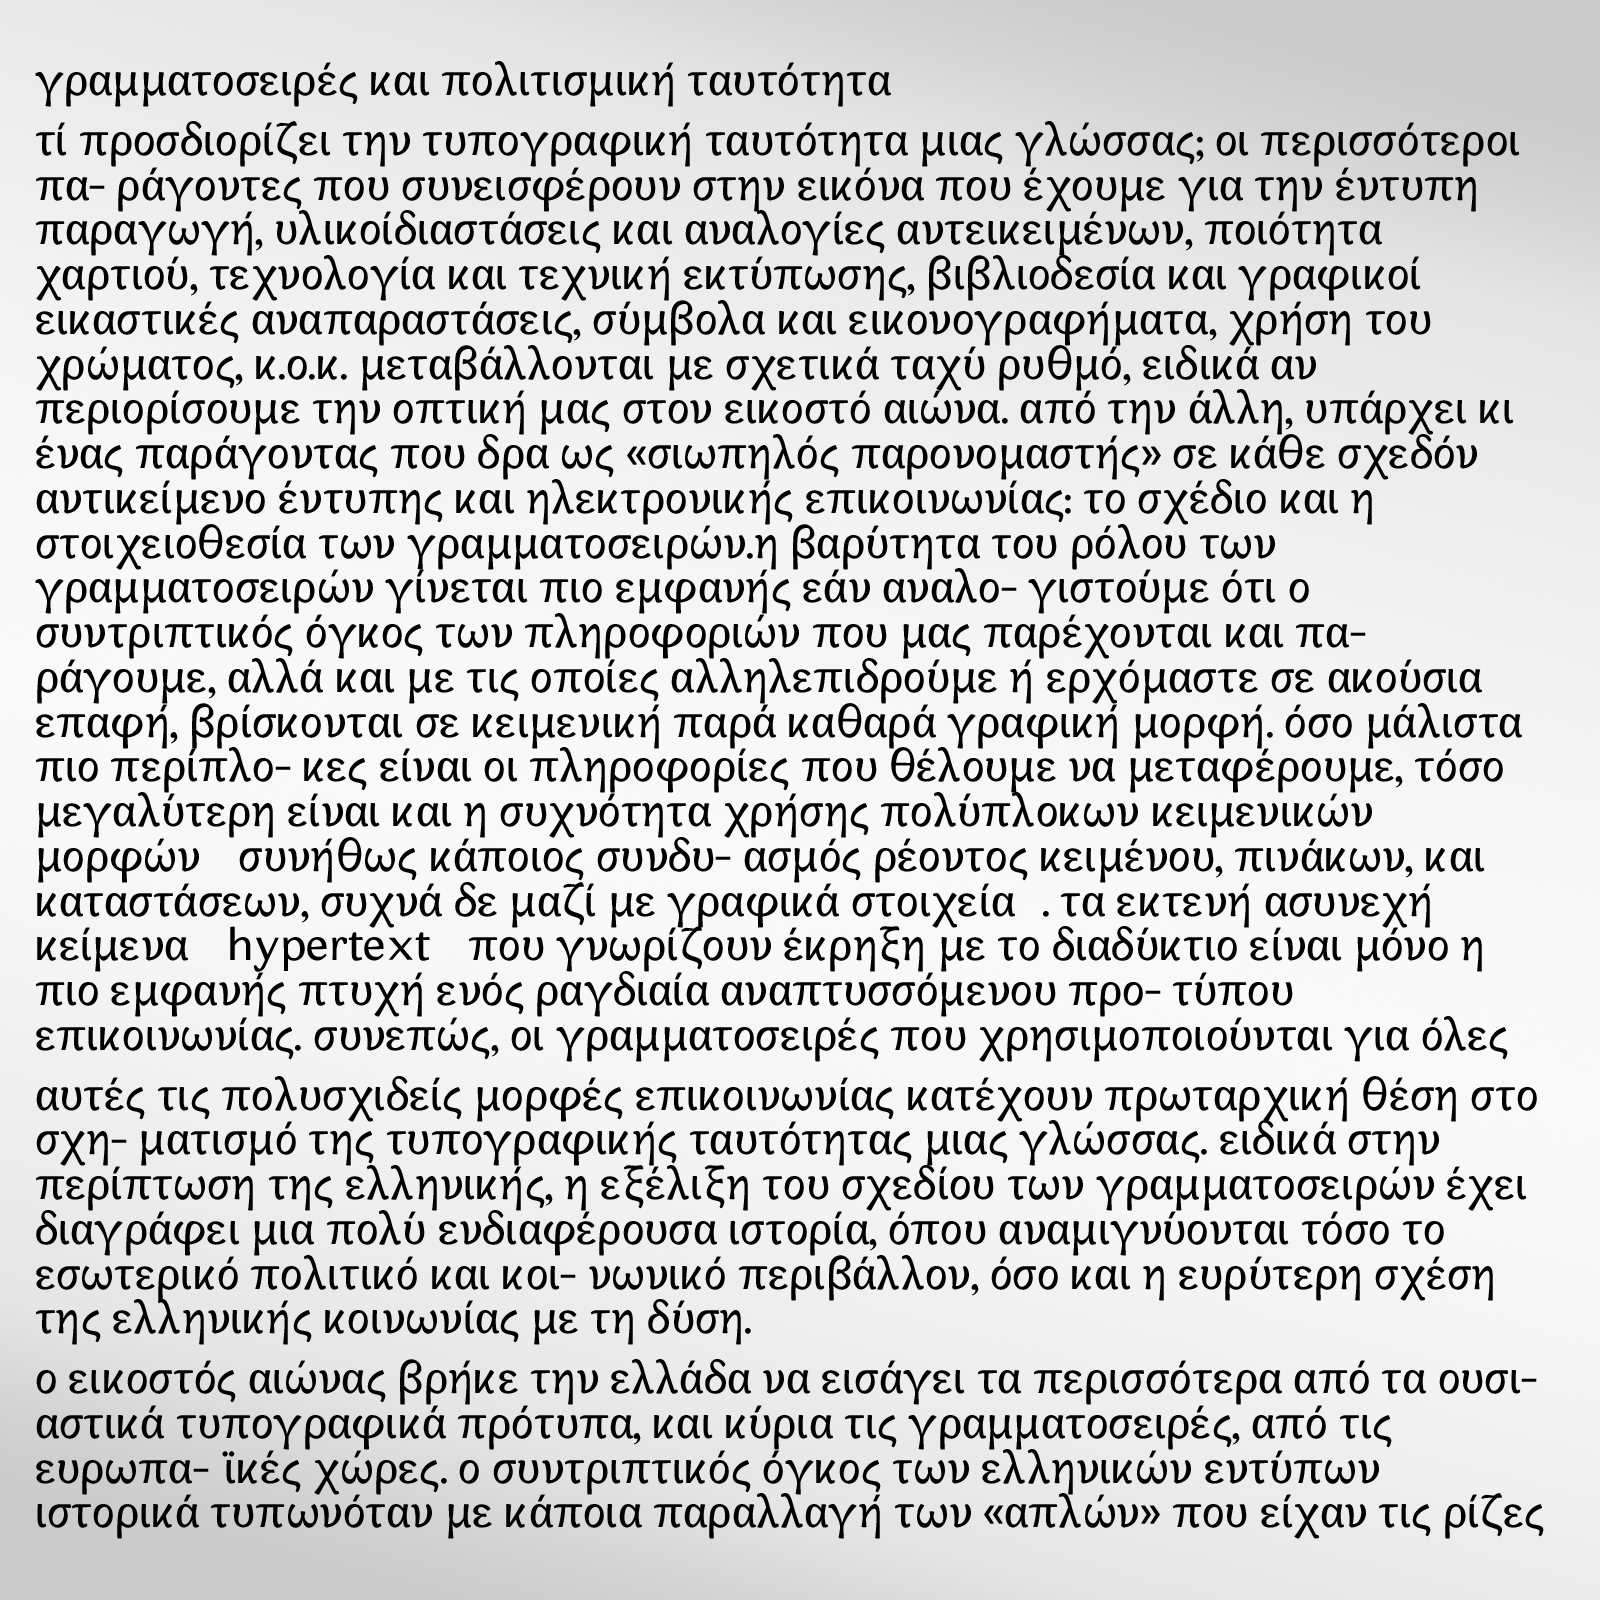 Sample greek text. Getting the right spacing was difficult.